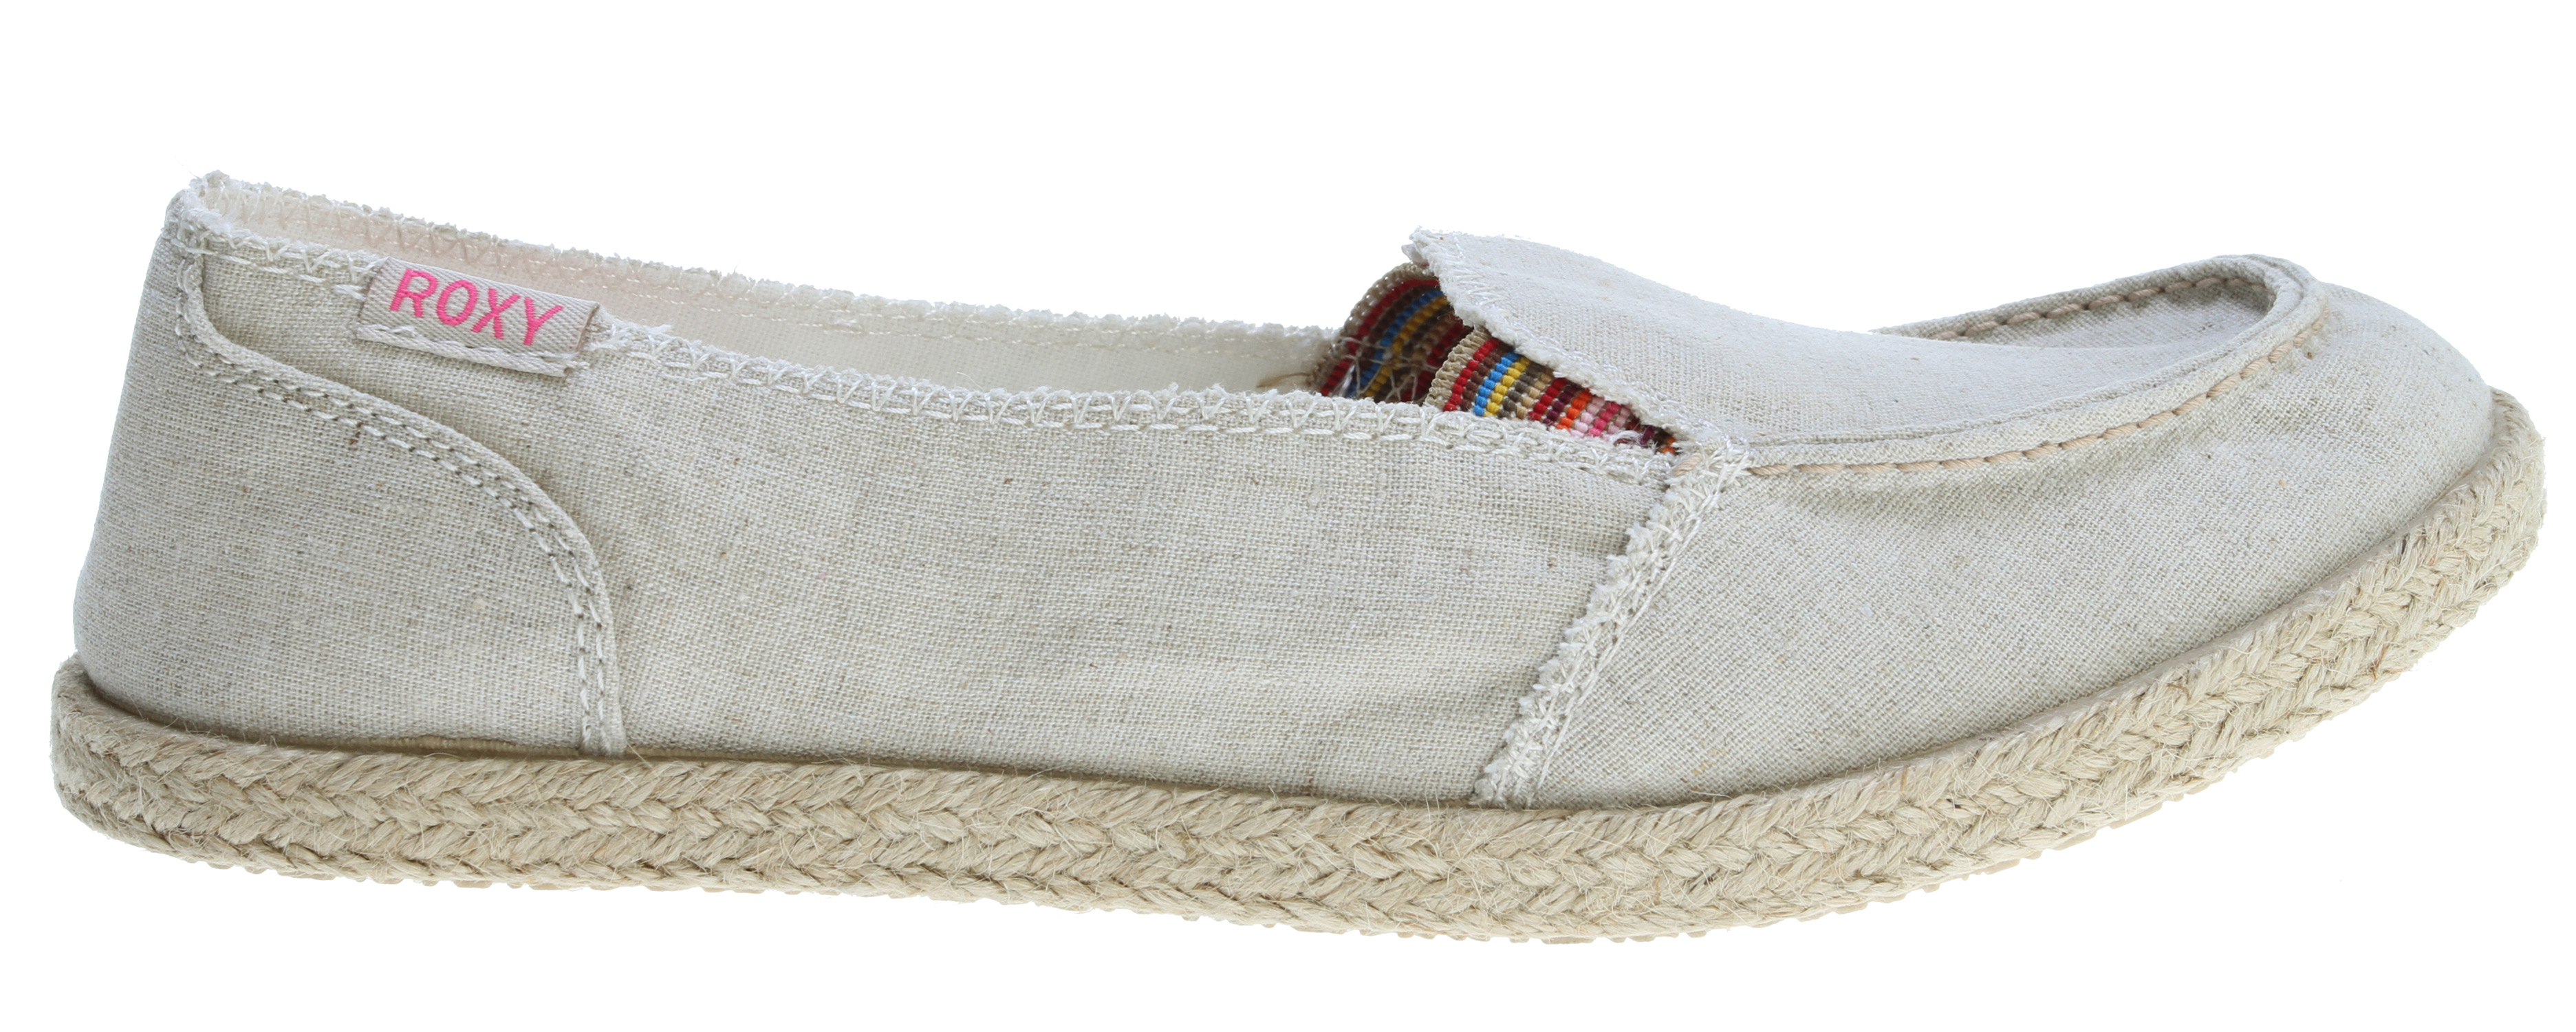 Surf Key Features of the Roxy Lido Jute Shoes: Washed twill or striped linen upper Logo flag Jute wrapped foxing Canvas lining Soft canvas padded insole with logo printed sock Flexible TPR injected outsole - $28.95